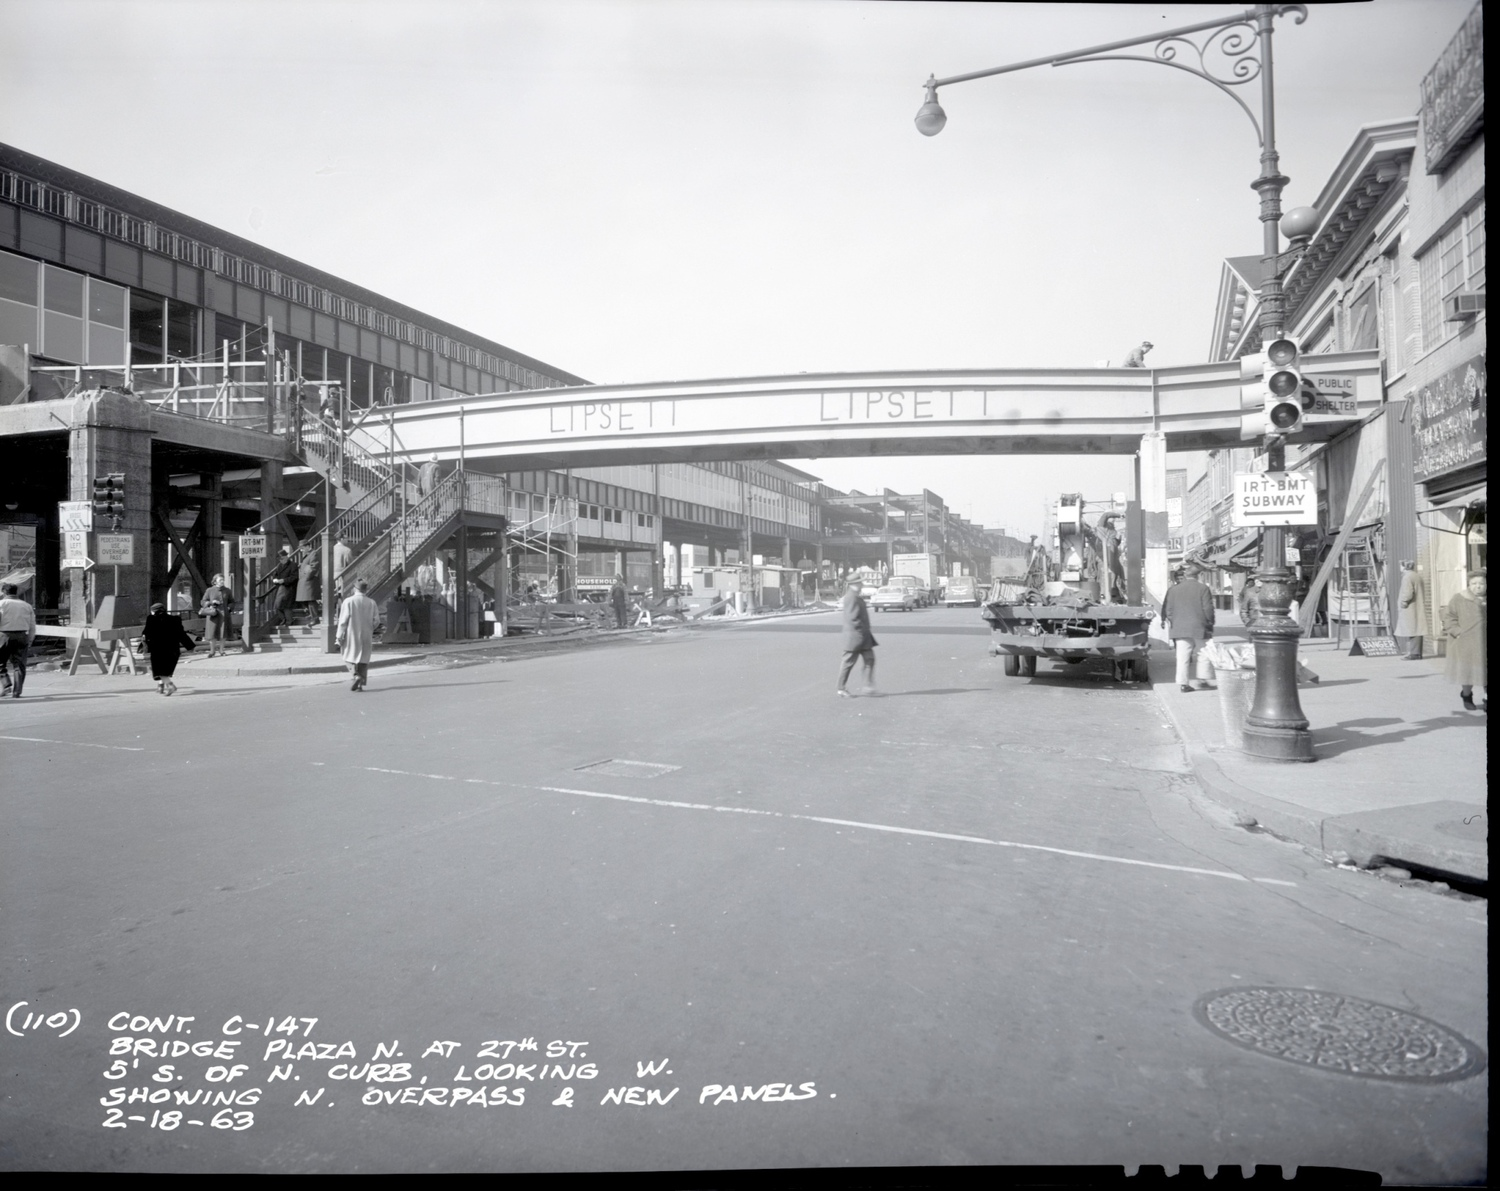 Queensboro Plaza Overpass 1963